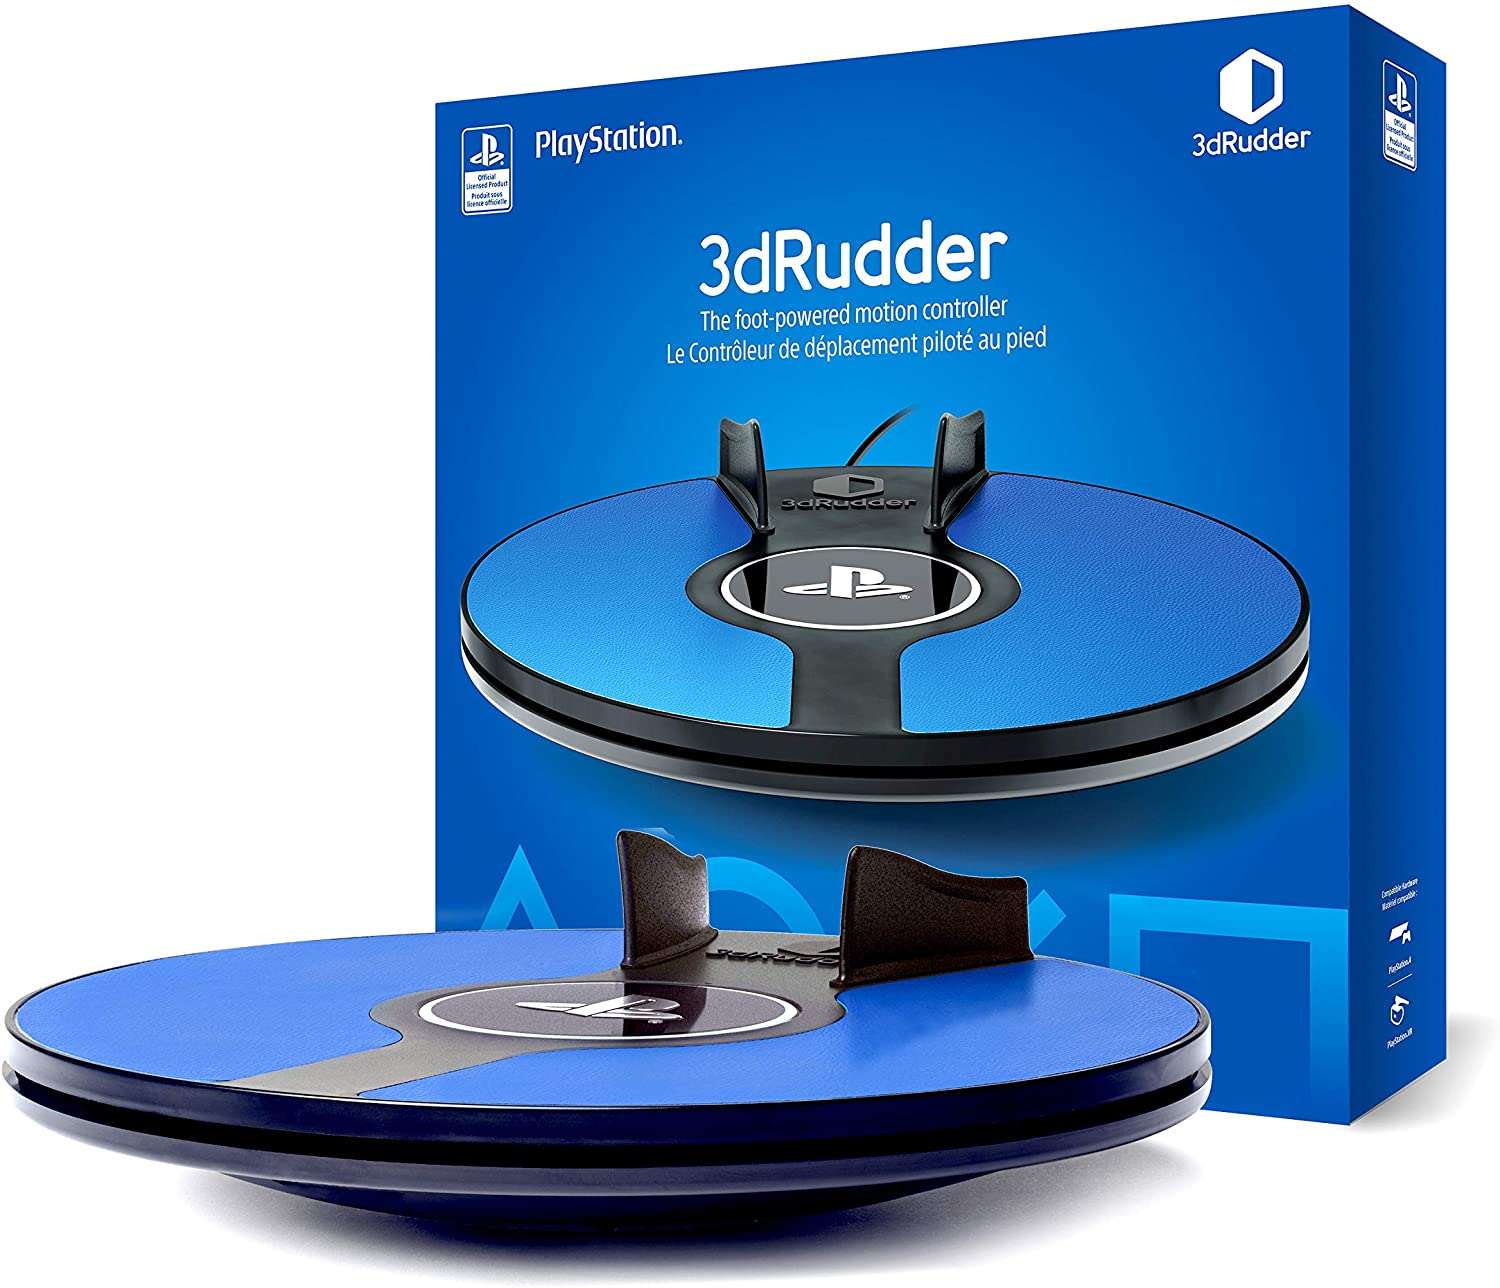 3dRudder for Playstation VR - Foot Motion Controller - Playstation VR - PSVR - Playstation Official Licensed Product